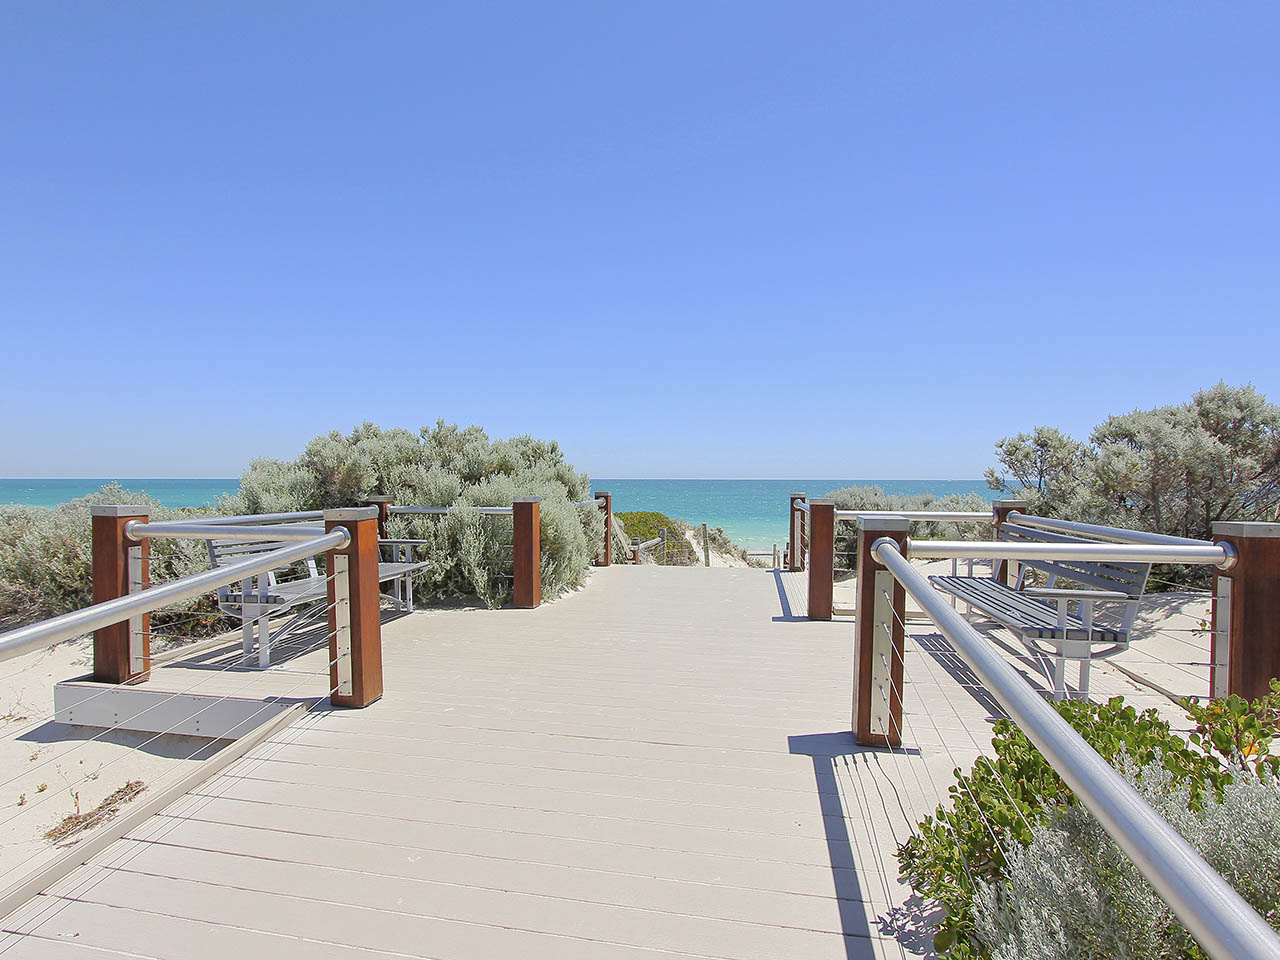 A Board Pathway To The Beach.